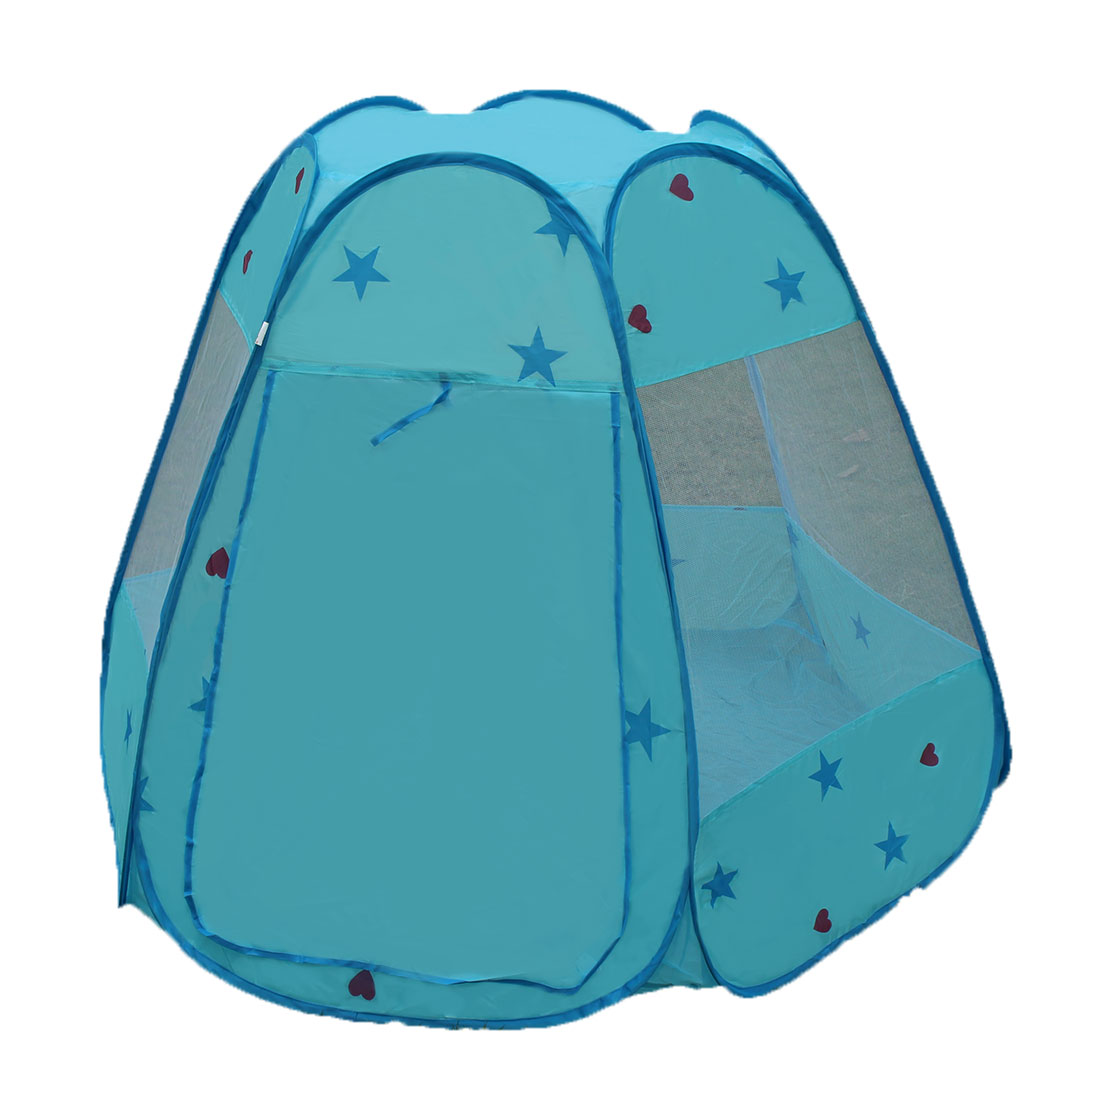 Indoor Stars Heart Pattern Foldable  Toy House Tent Light Blue